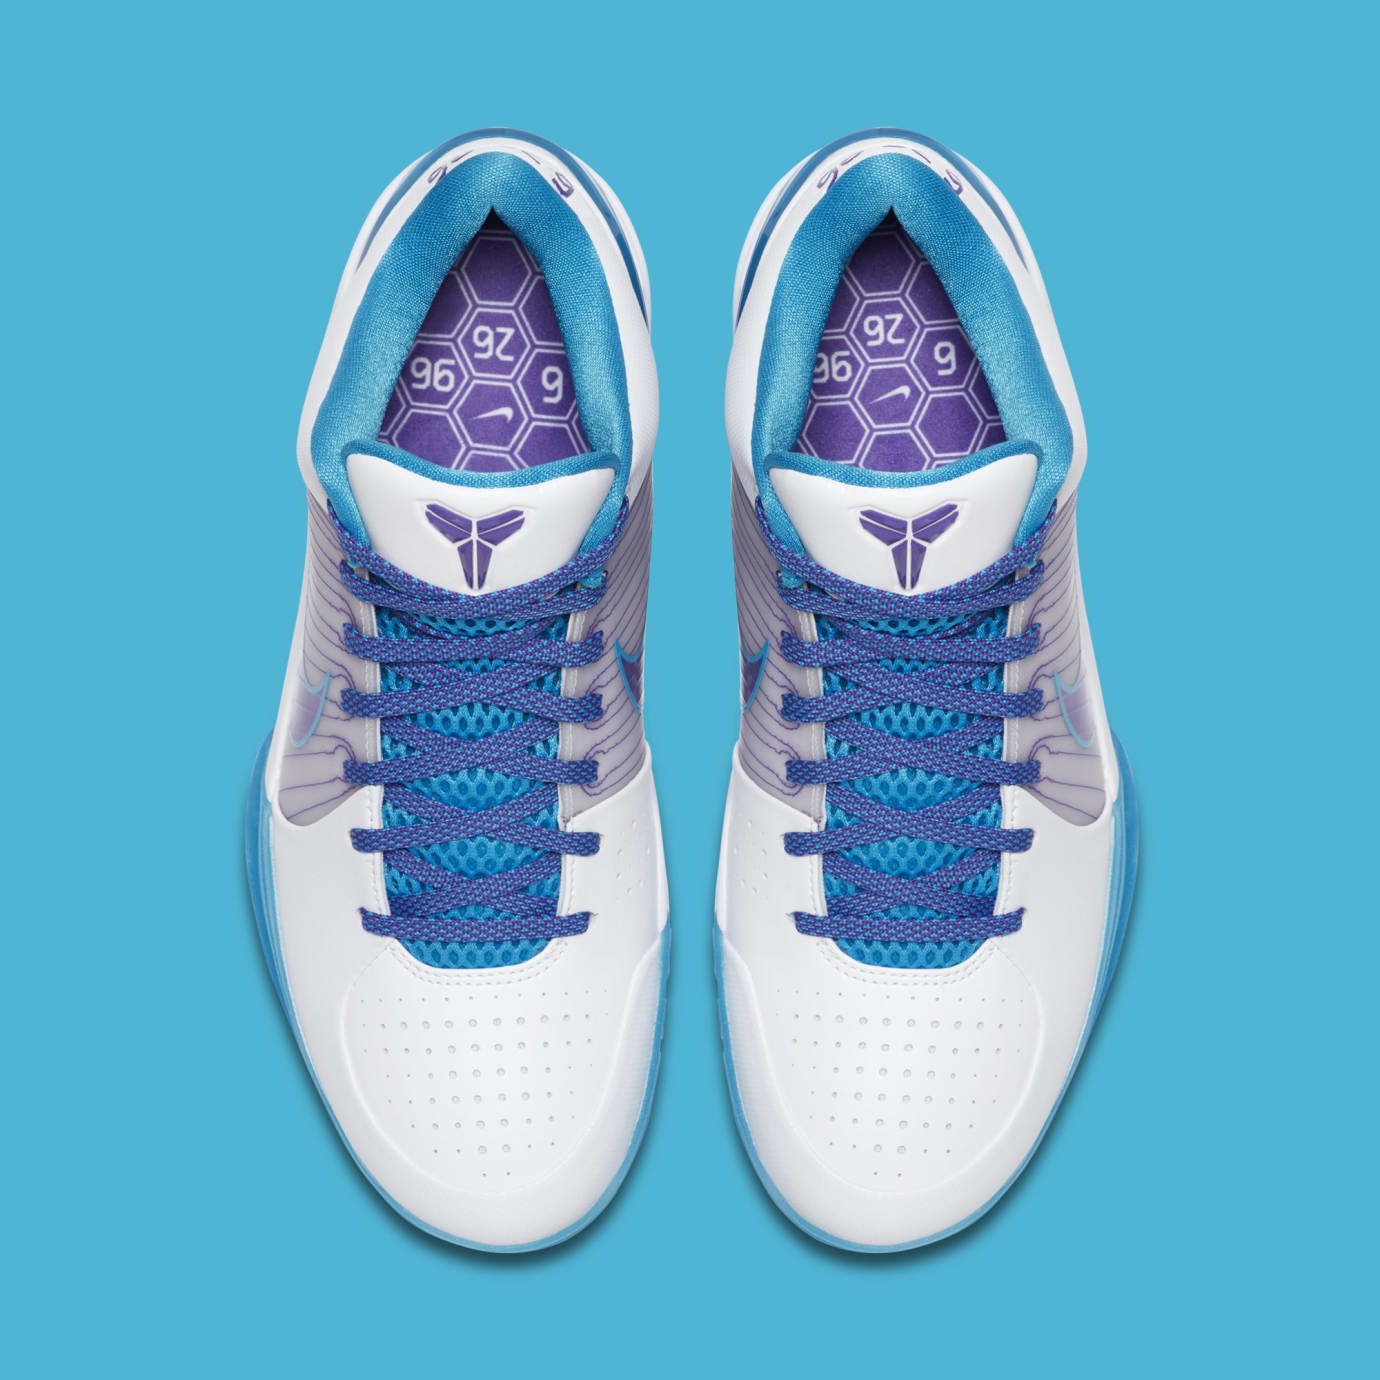 Nike Kobe 4 Protro 'White/Orion Blue-Varsity Purple' AV6339-100 (Top)